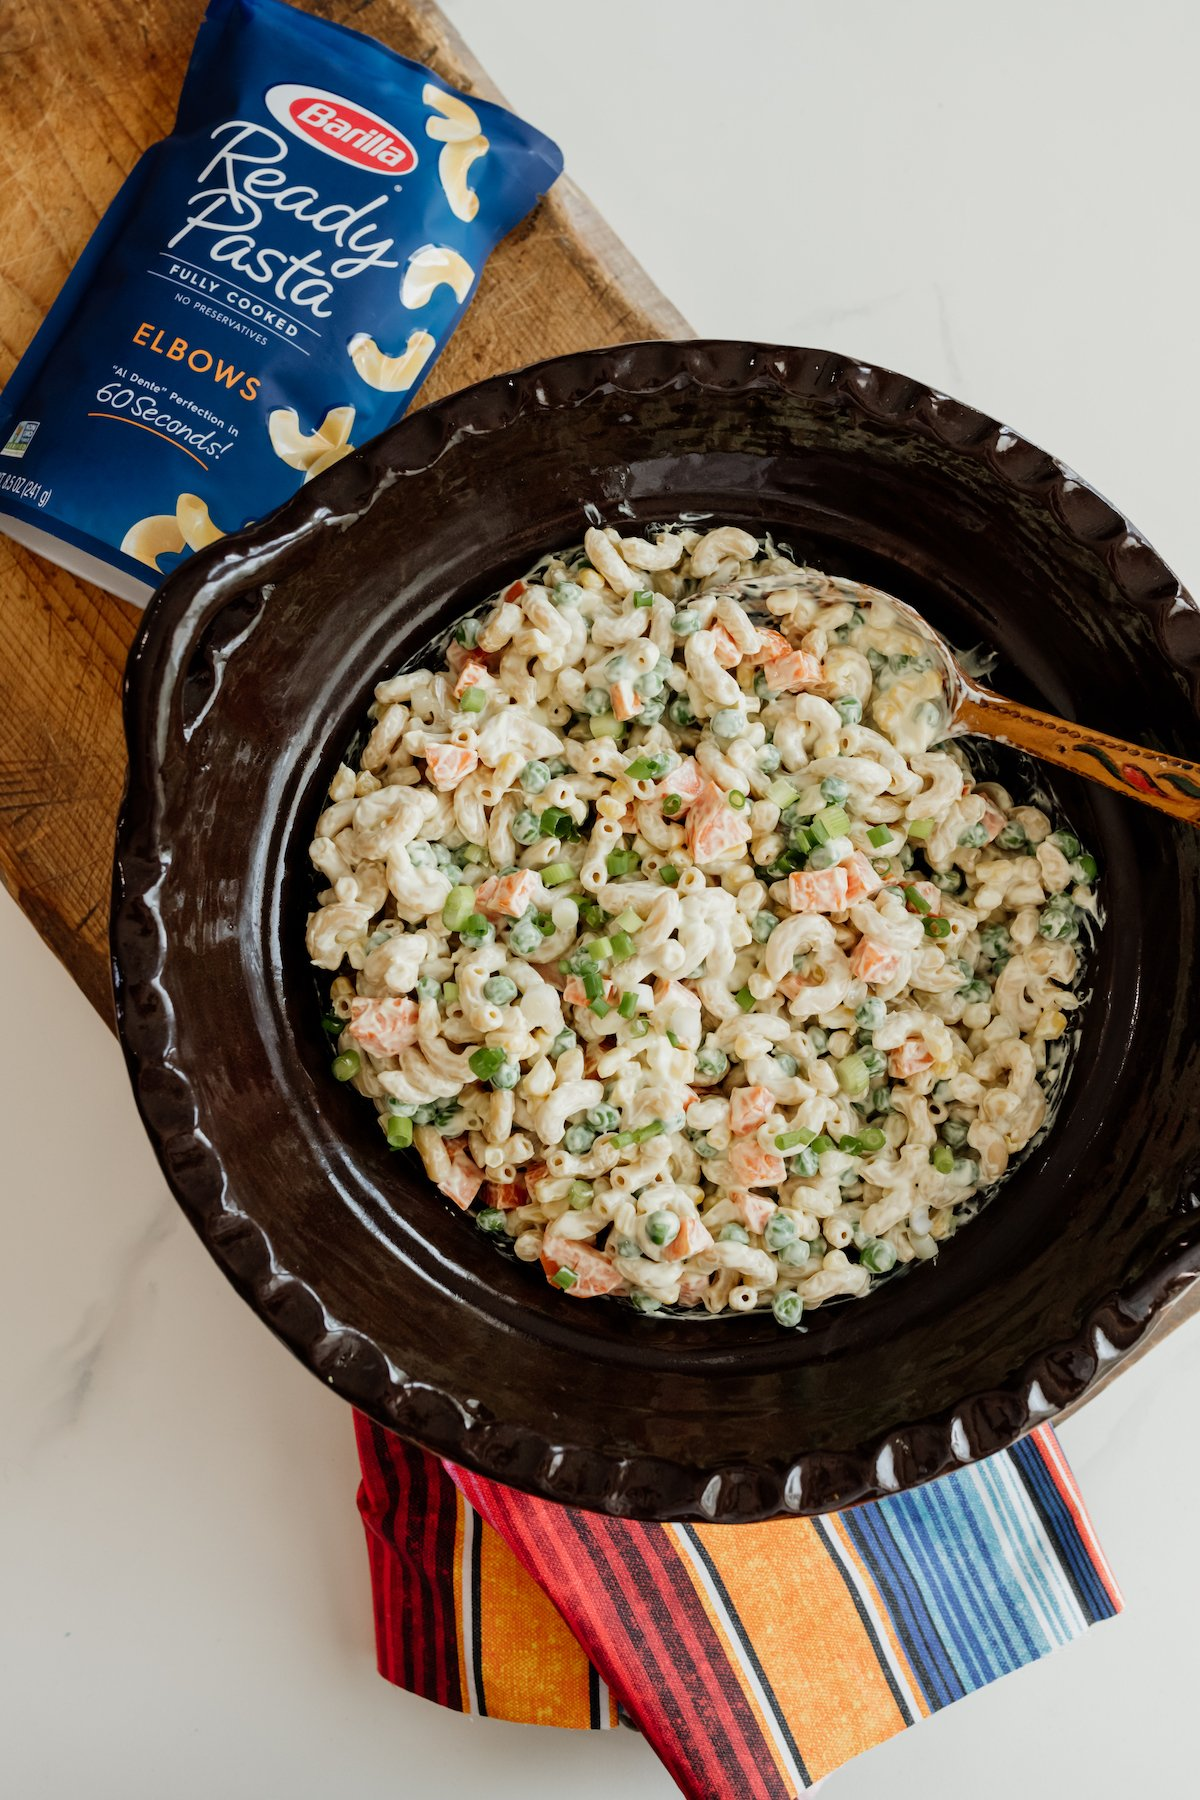 Ensalada de Coditos (Macaroni Salad) in a Mexican brown barro bowl with wooden spoon and striped napkin and a pouch of Ready Pasta by Barilla